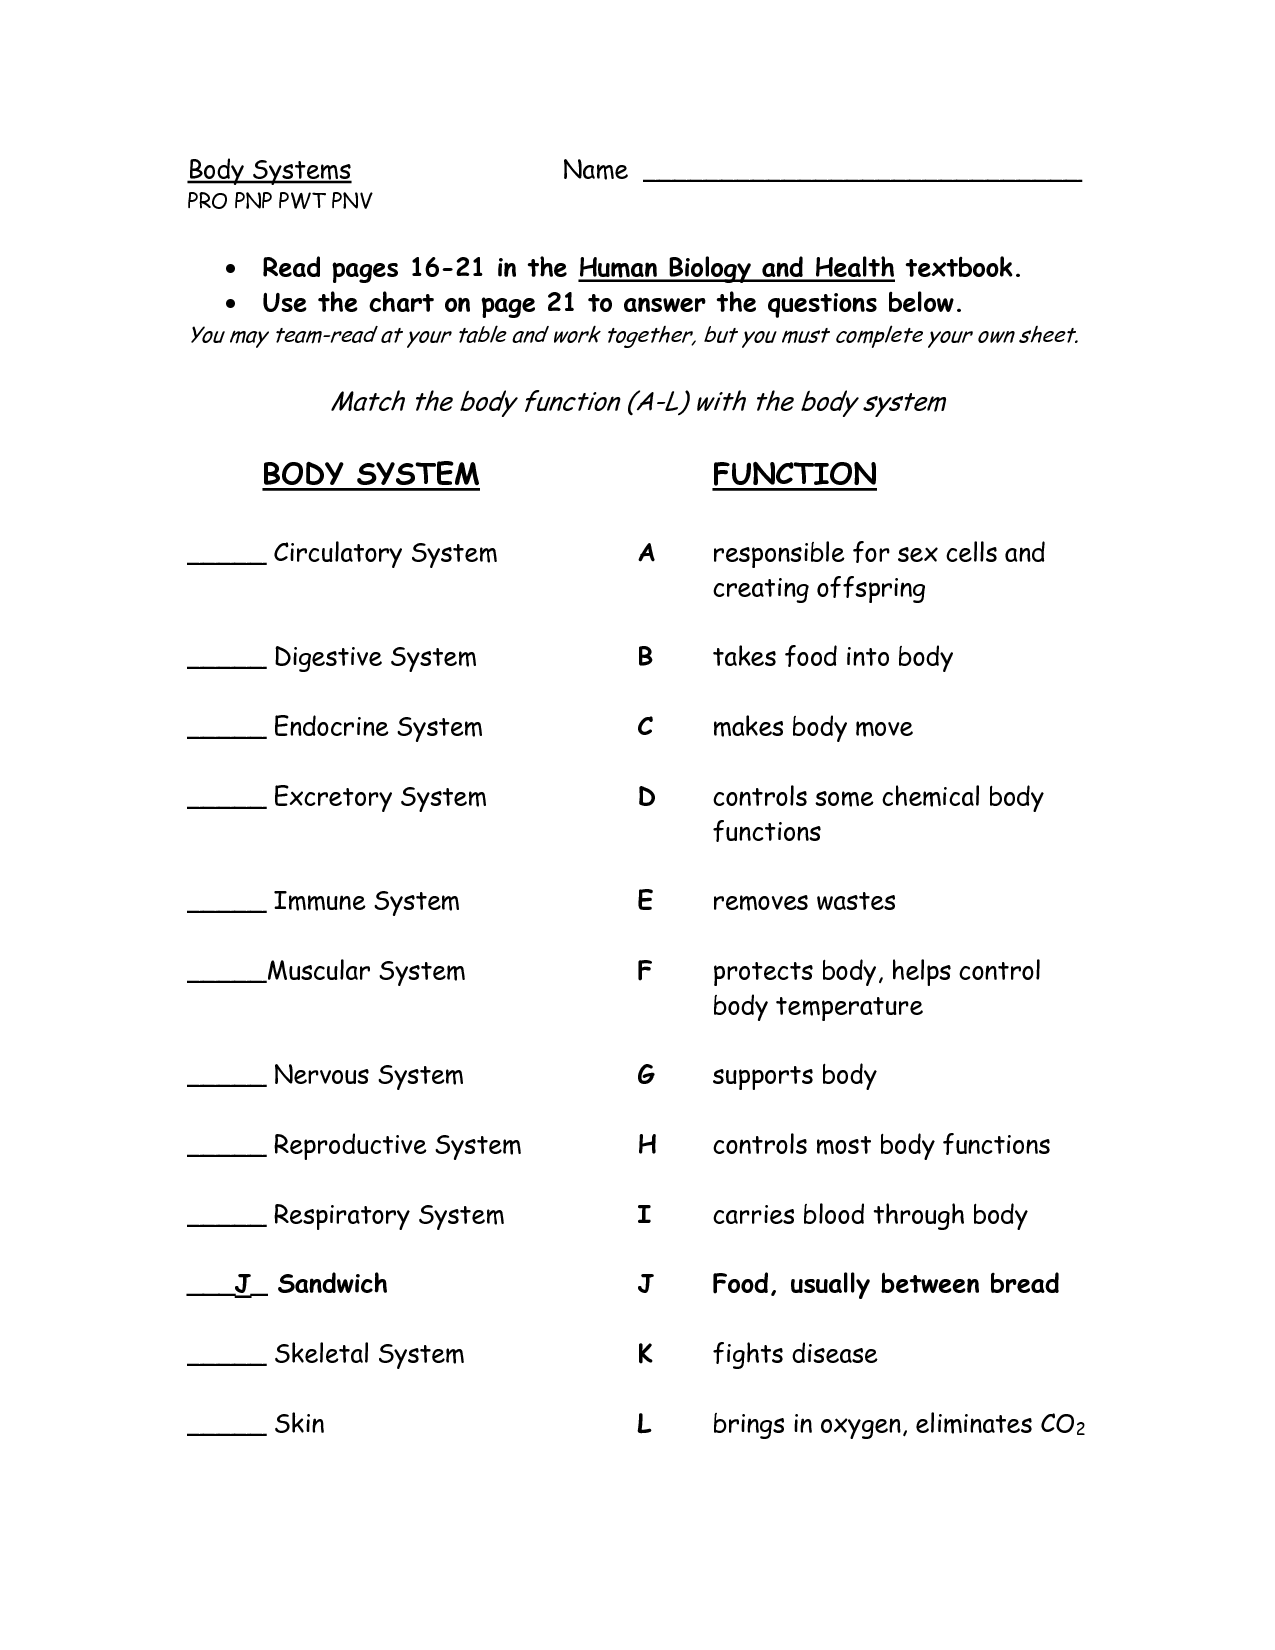 Worksheets Human Body System Worksheet body systems and functions worksheets instructional activities worksheets